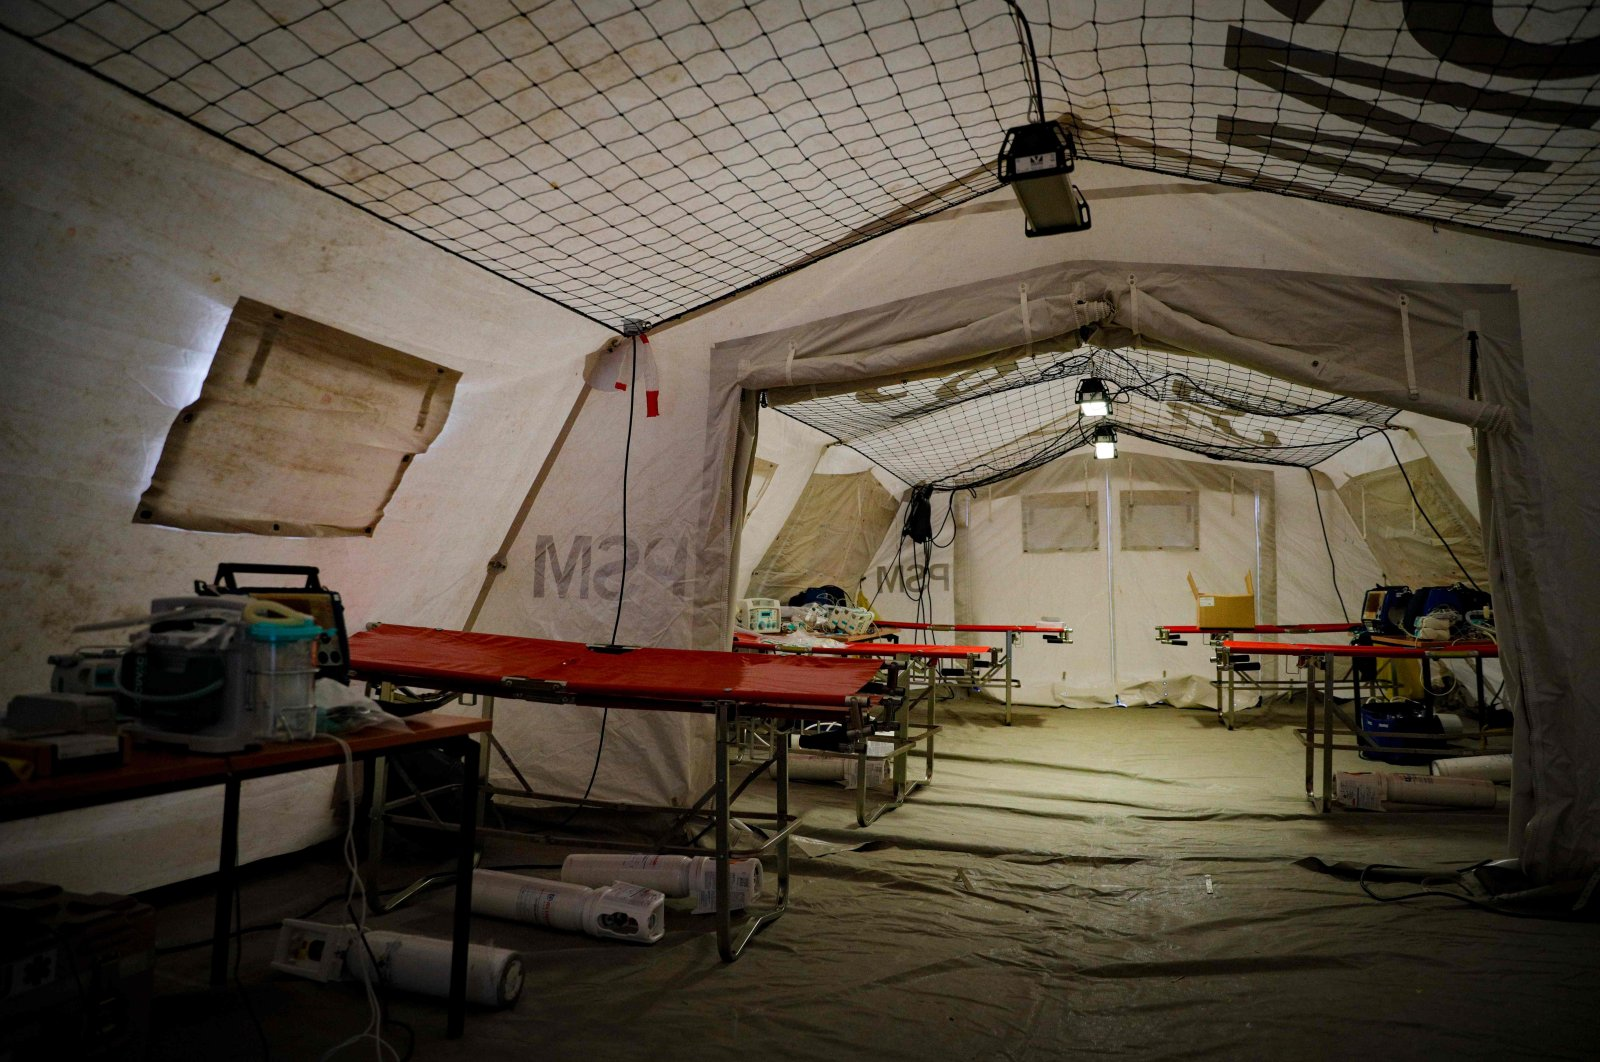 A photo shows the interior of a tent with medical equipment for treating patients infected with COVID-19, installed on the tarmac at Paris Orly Airport, France, Friday, April 3, 2020. (AFP Photo)